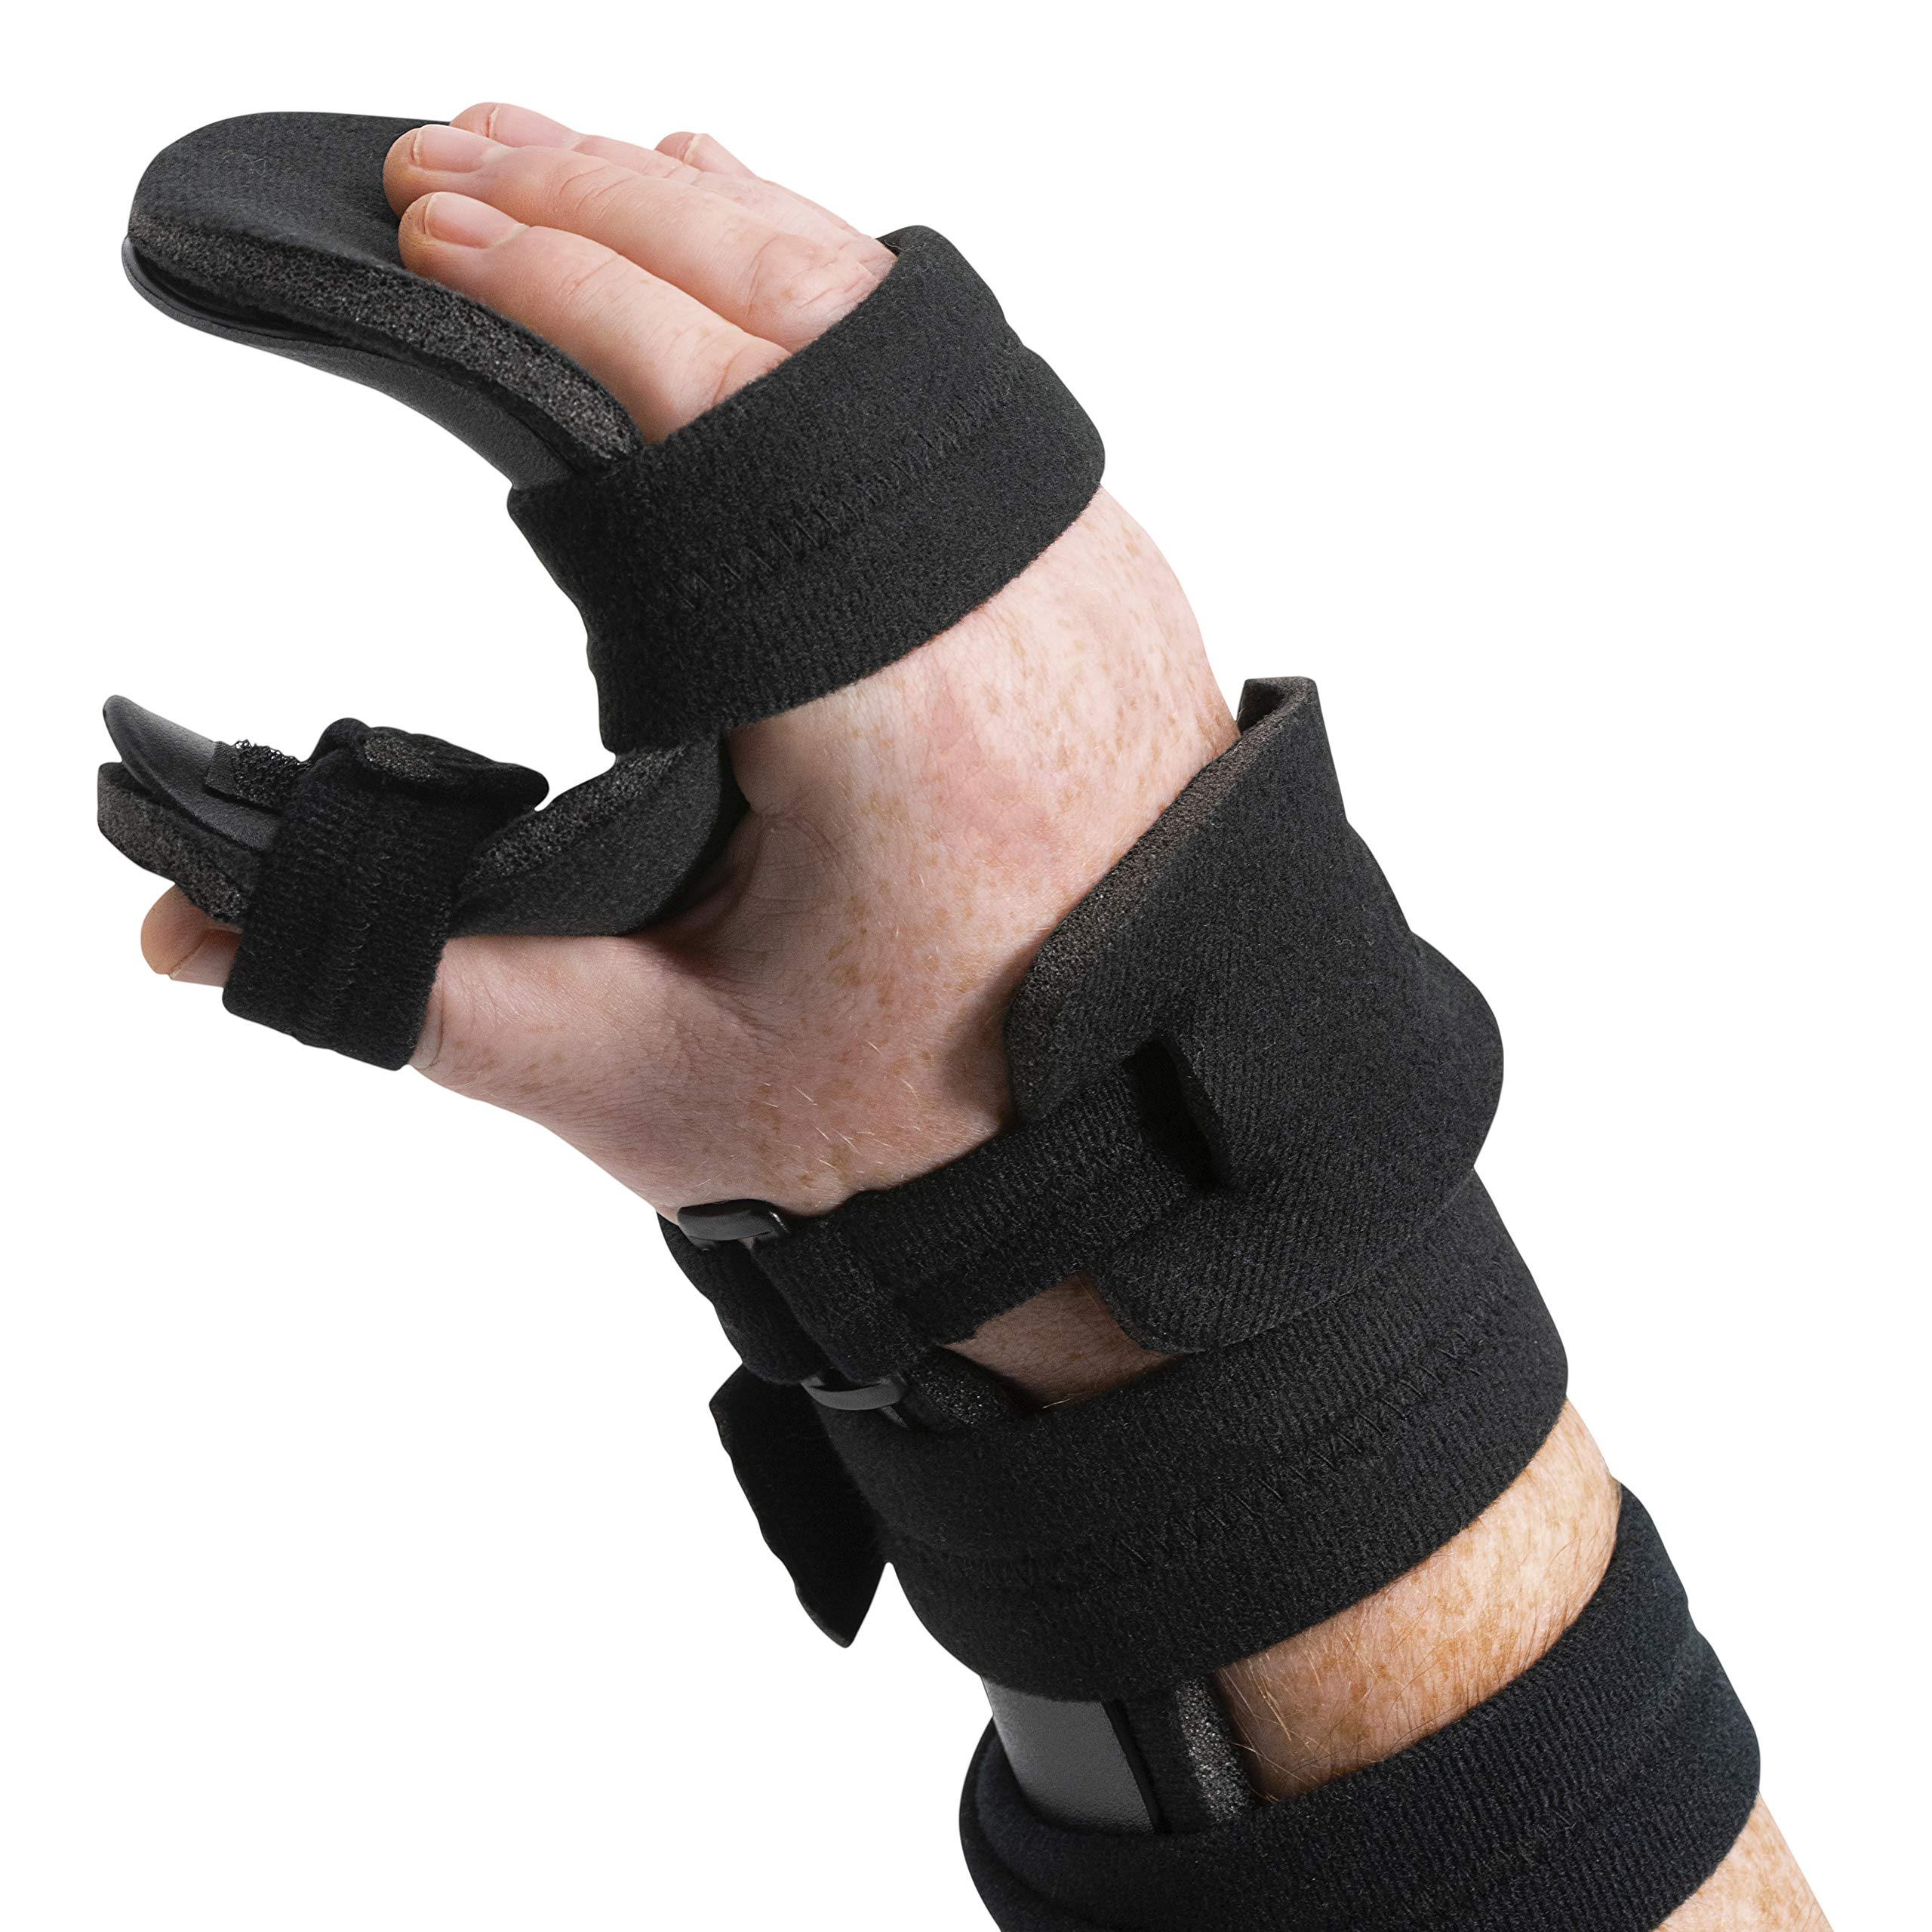 Stroke Hand Splint- Soft Resting Hand Splint for Flexion Contractures, Comfortably Stretch and Rest Hands for Long Term Ease with Functional Hand Splint, an American Heritage Industries(Right, Medium) by American Heritage Industries